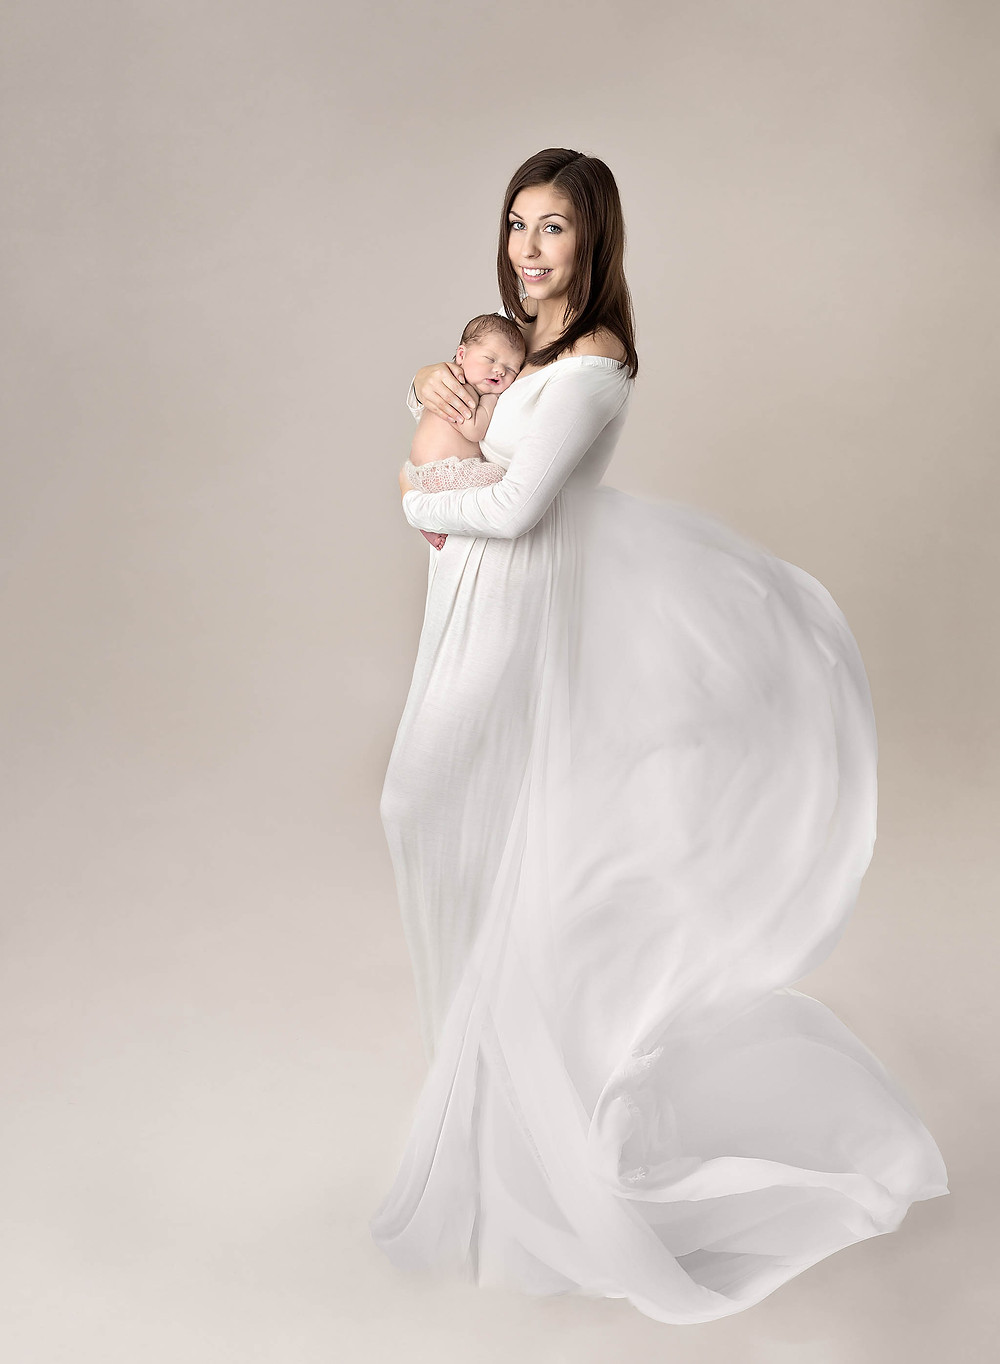 Mother and newborn baby photography by Fairy Nuff Photography, Nottingham